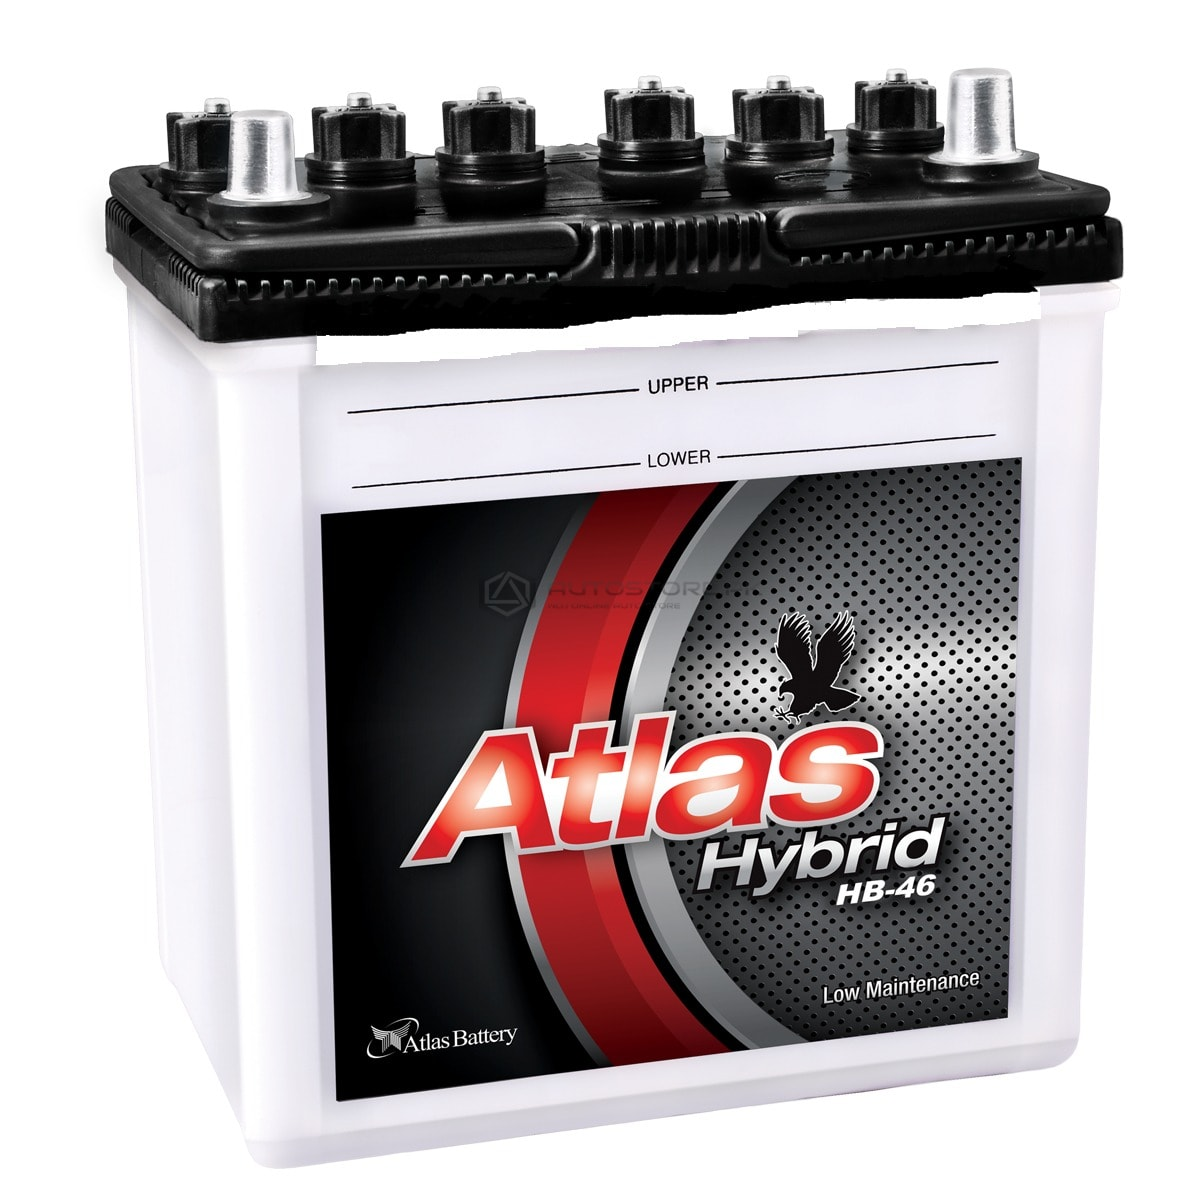 Ags Batteries At Best Price Online In Pakistan Autostore Pk